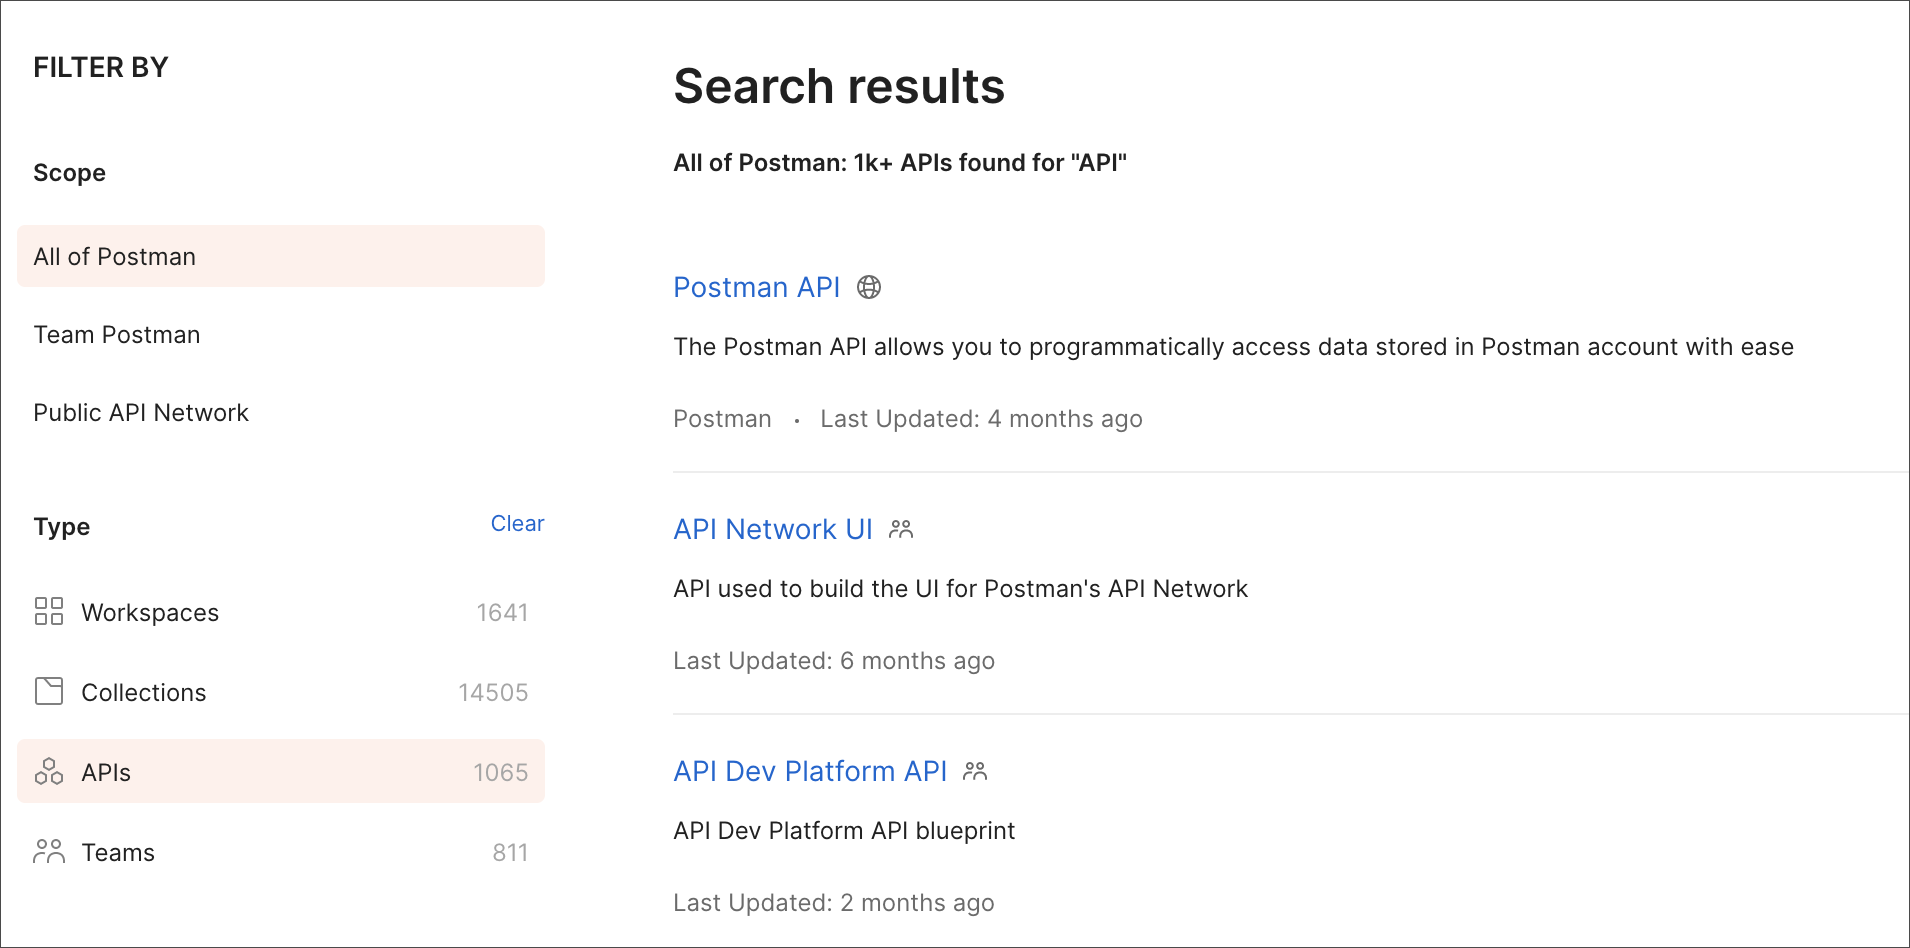 Individual API search results